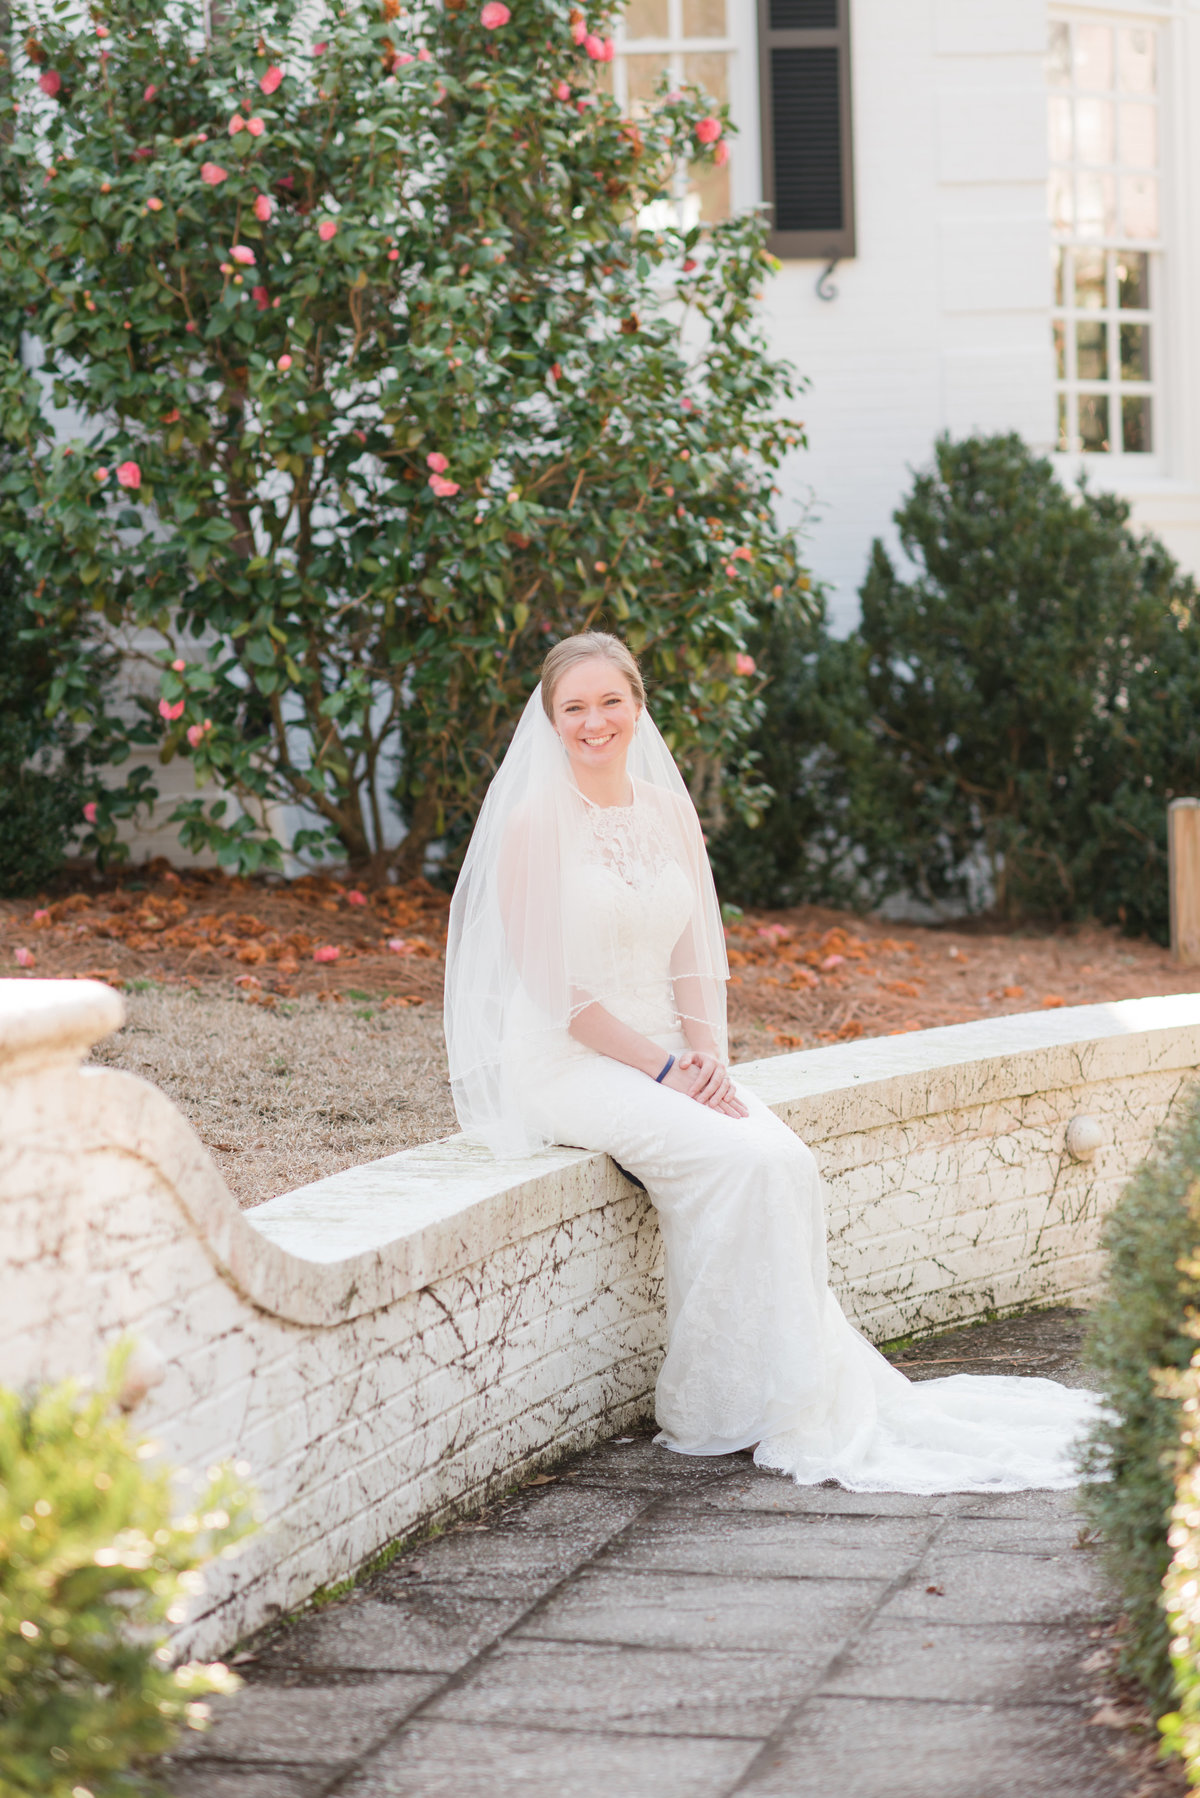 A New Bern Bridal Session, Michelle & Sara Photography, New Bern NC100